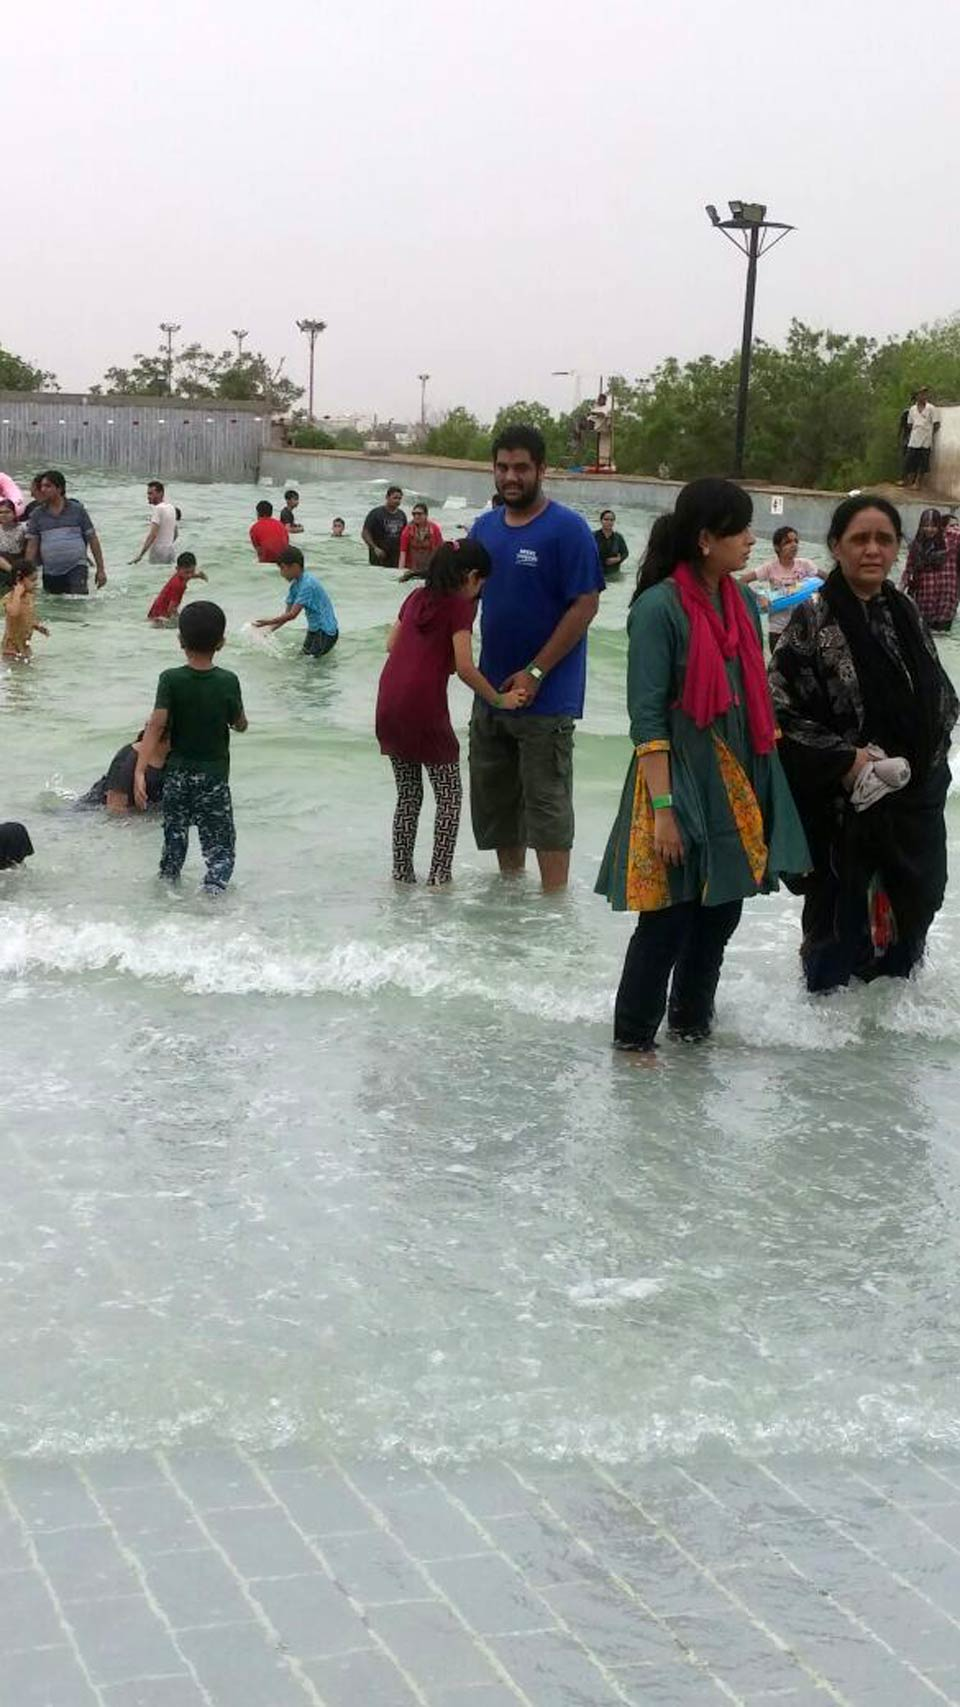 All are enjoying in the artificial wave pool